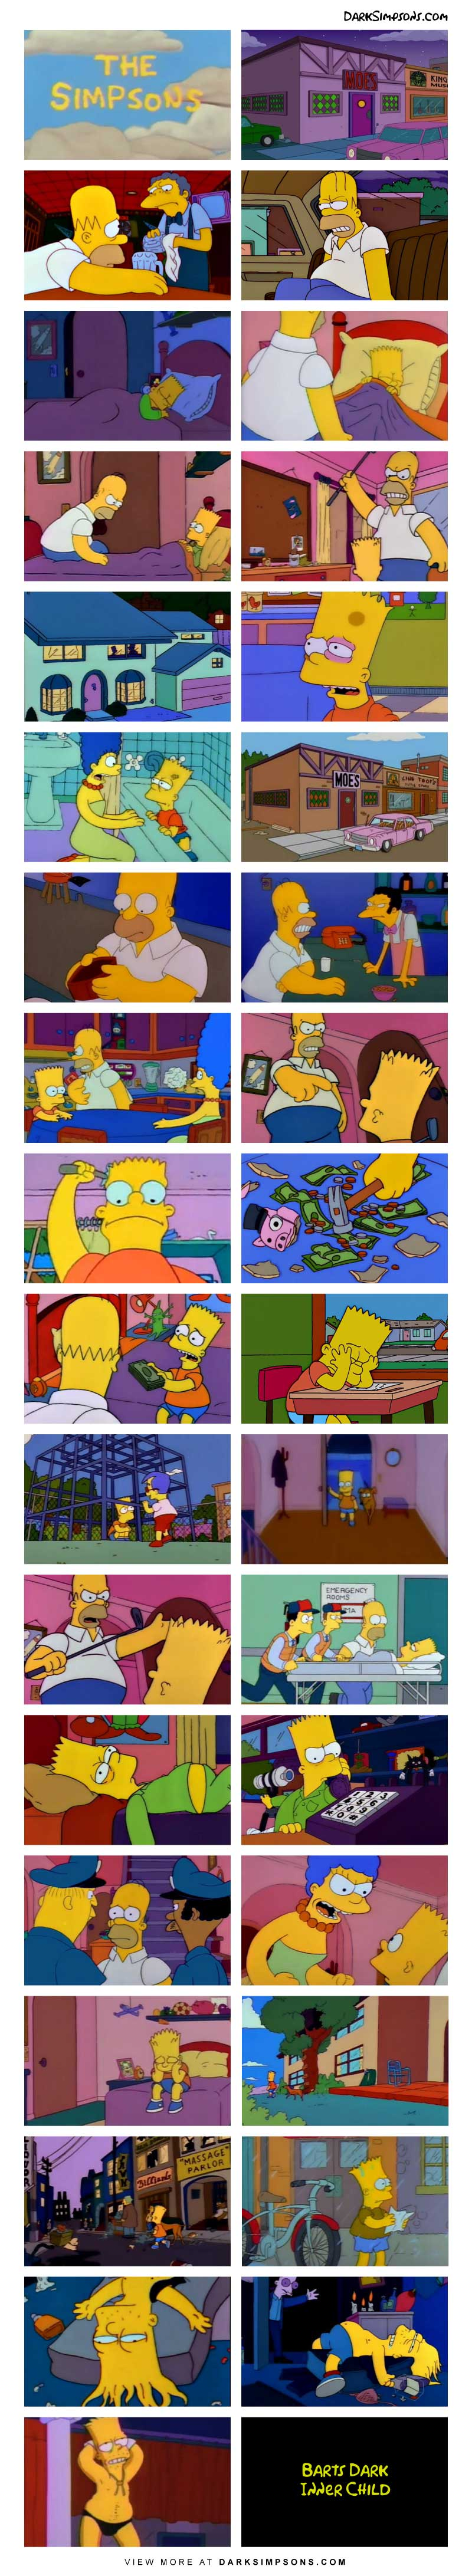 Bart in suffering at home which forces him to make some tough decisions. His traumatic childhood spirals into a dark adult life.